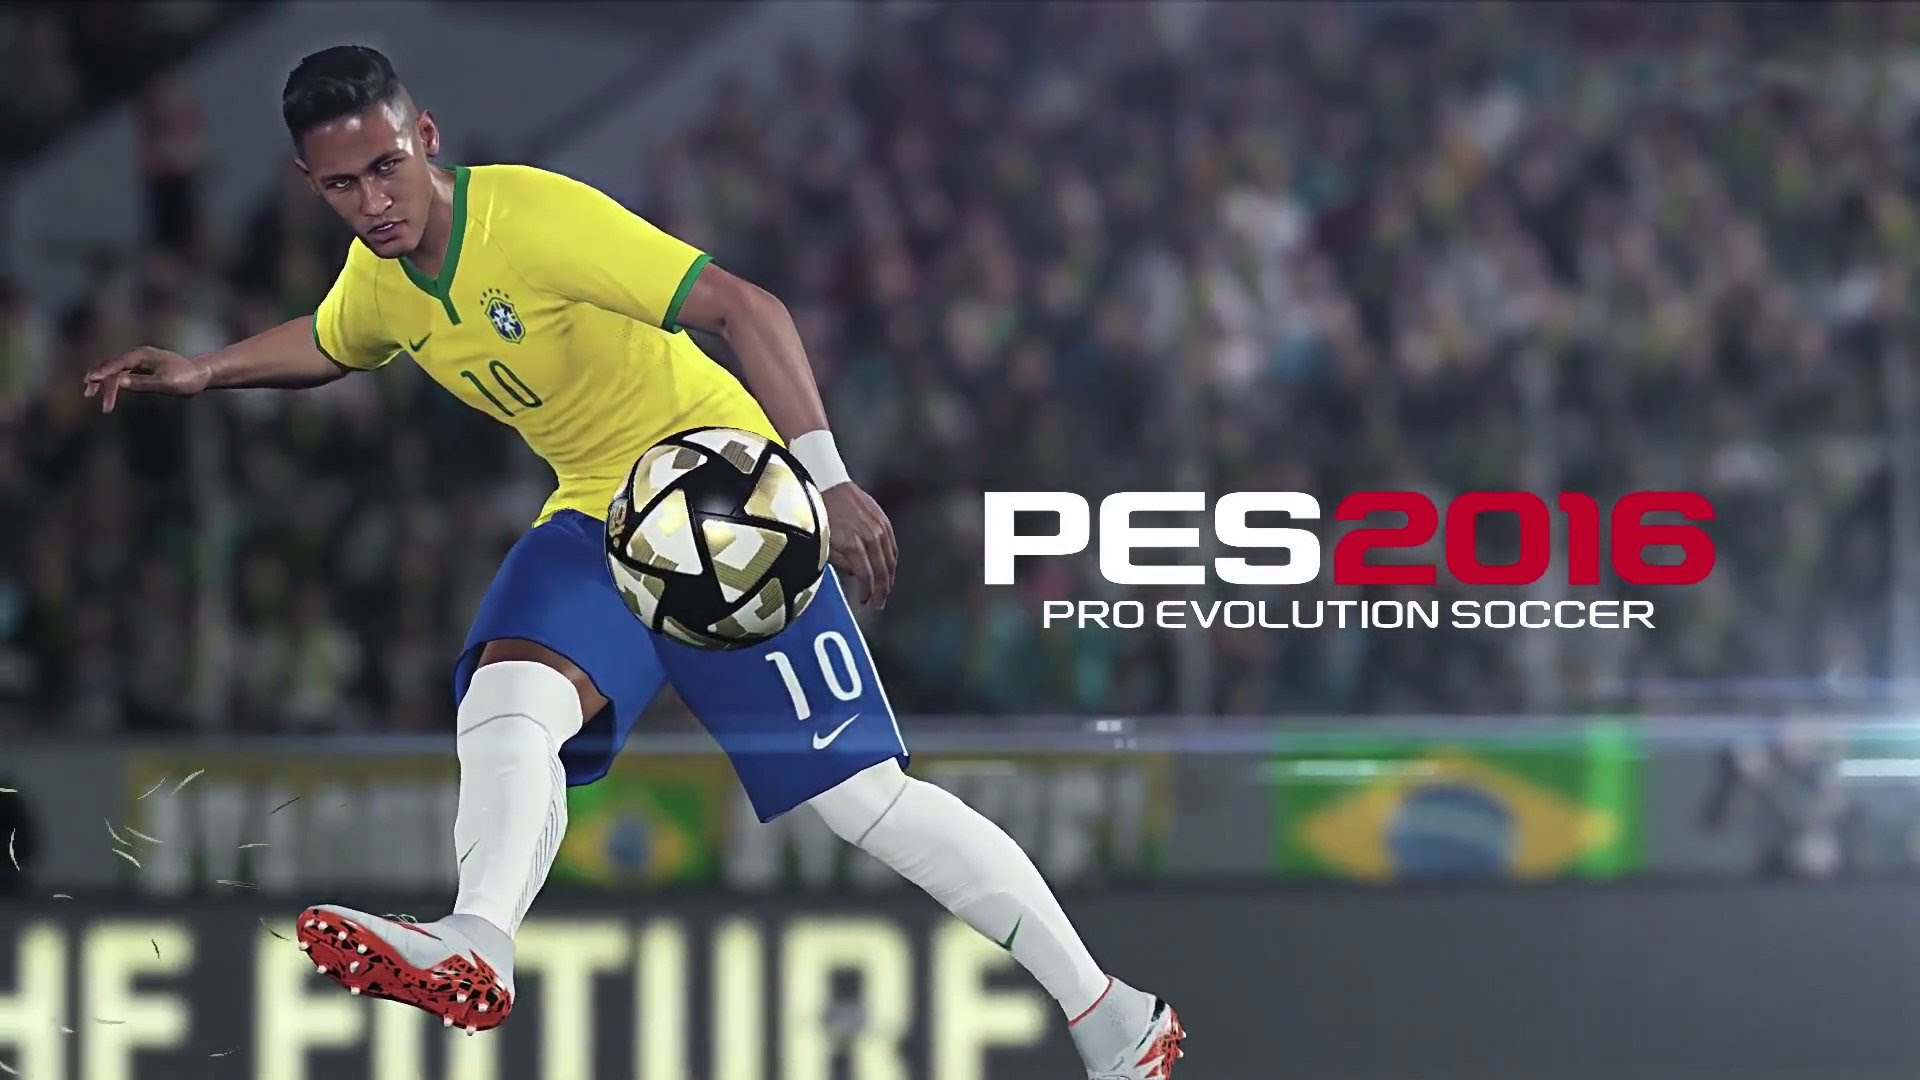 Pro Evolution Soccer 2012 - 2016 PC Full Version